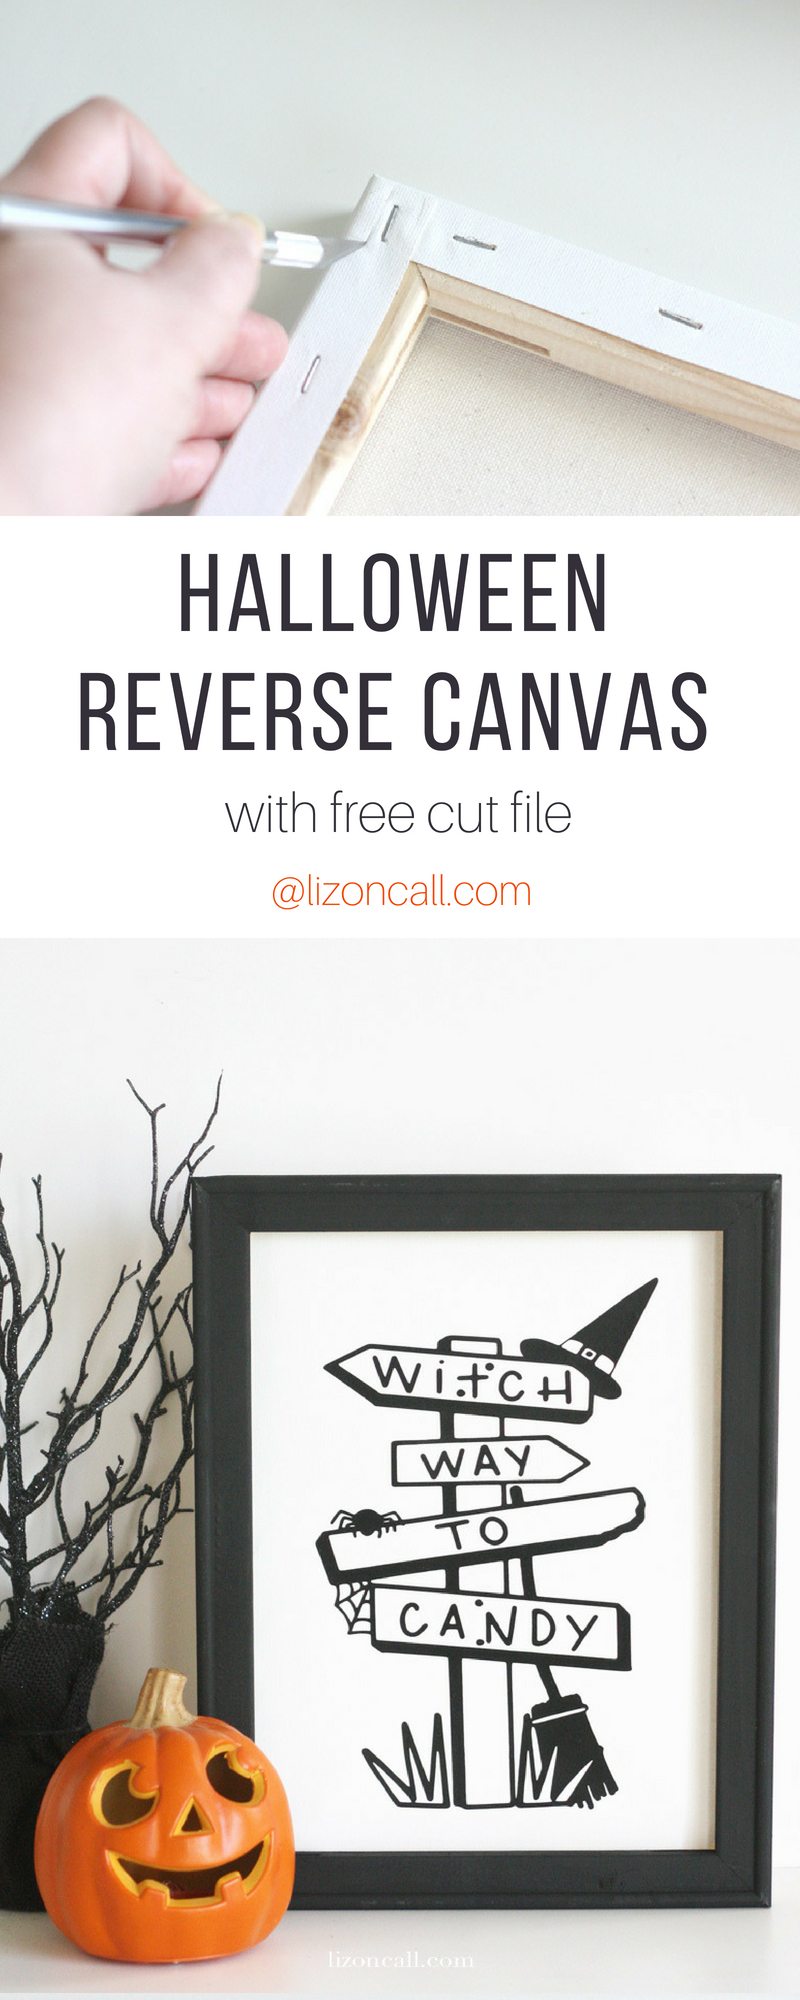 This Halloween Reverse Canvas is a super easy and quick home decor project to spook up your mantel for the holiday.